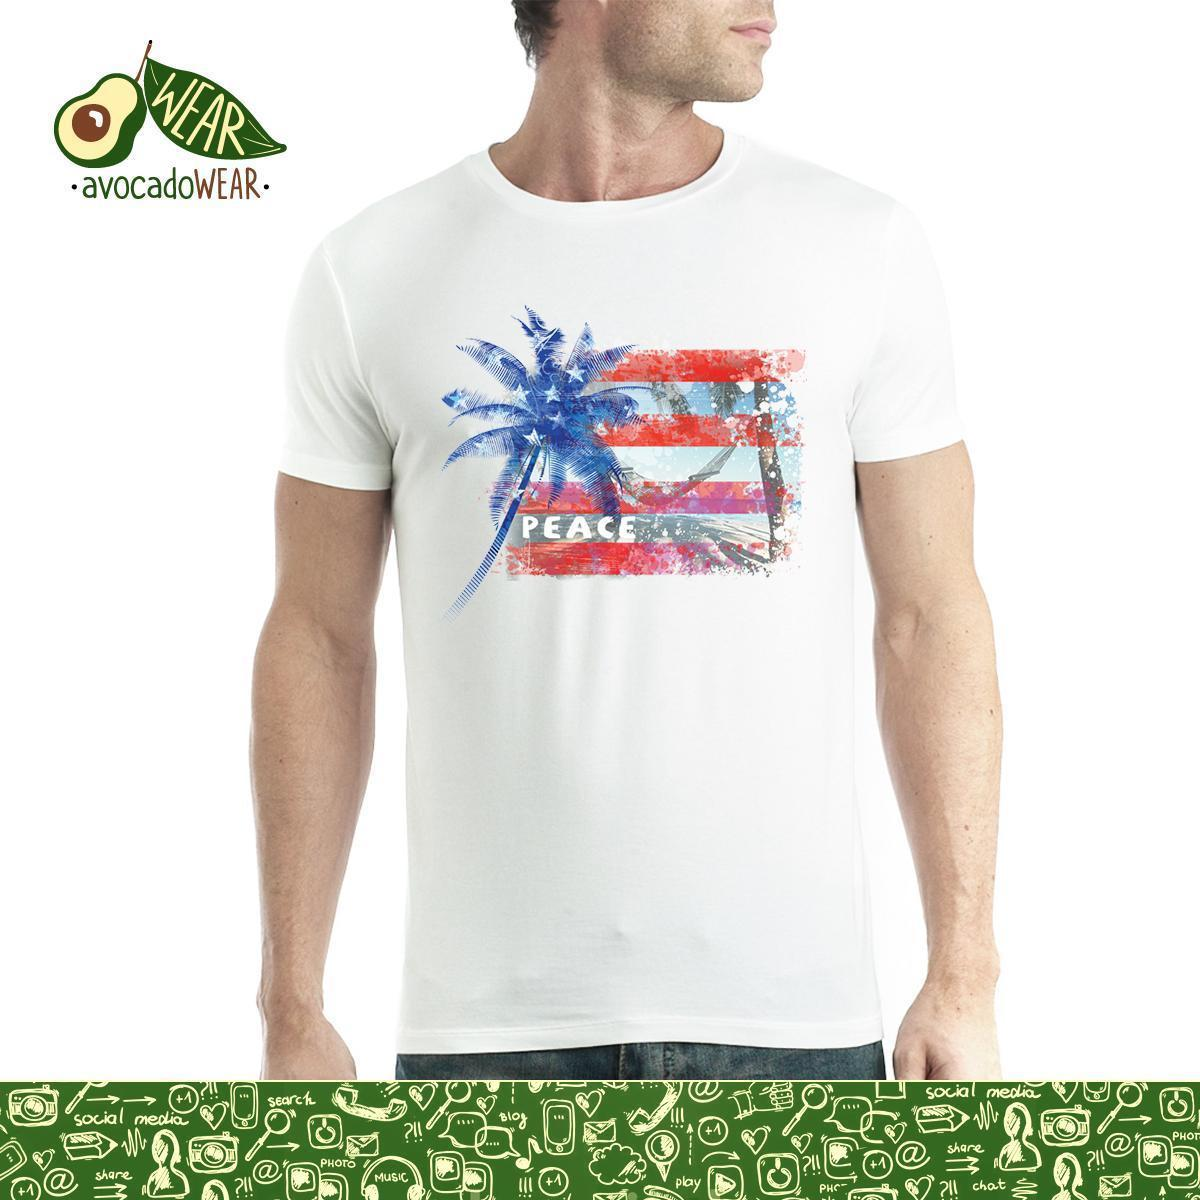 3b69a90a3c6 Peace Palm America Flag Usa Men T Shirt S 3xl T Shirts Funny Tops Tee New  Unisex High Quality Casual Printing 100% Cotton Raid Shirt T Shirts In A  Day From ...